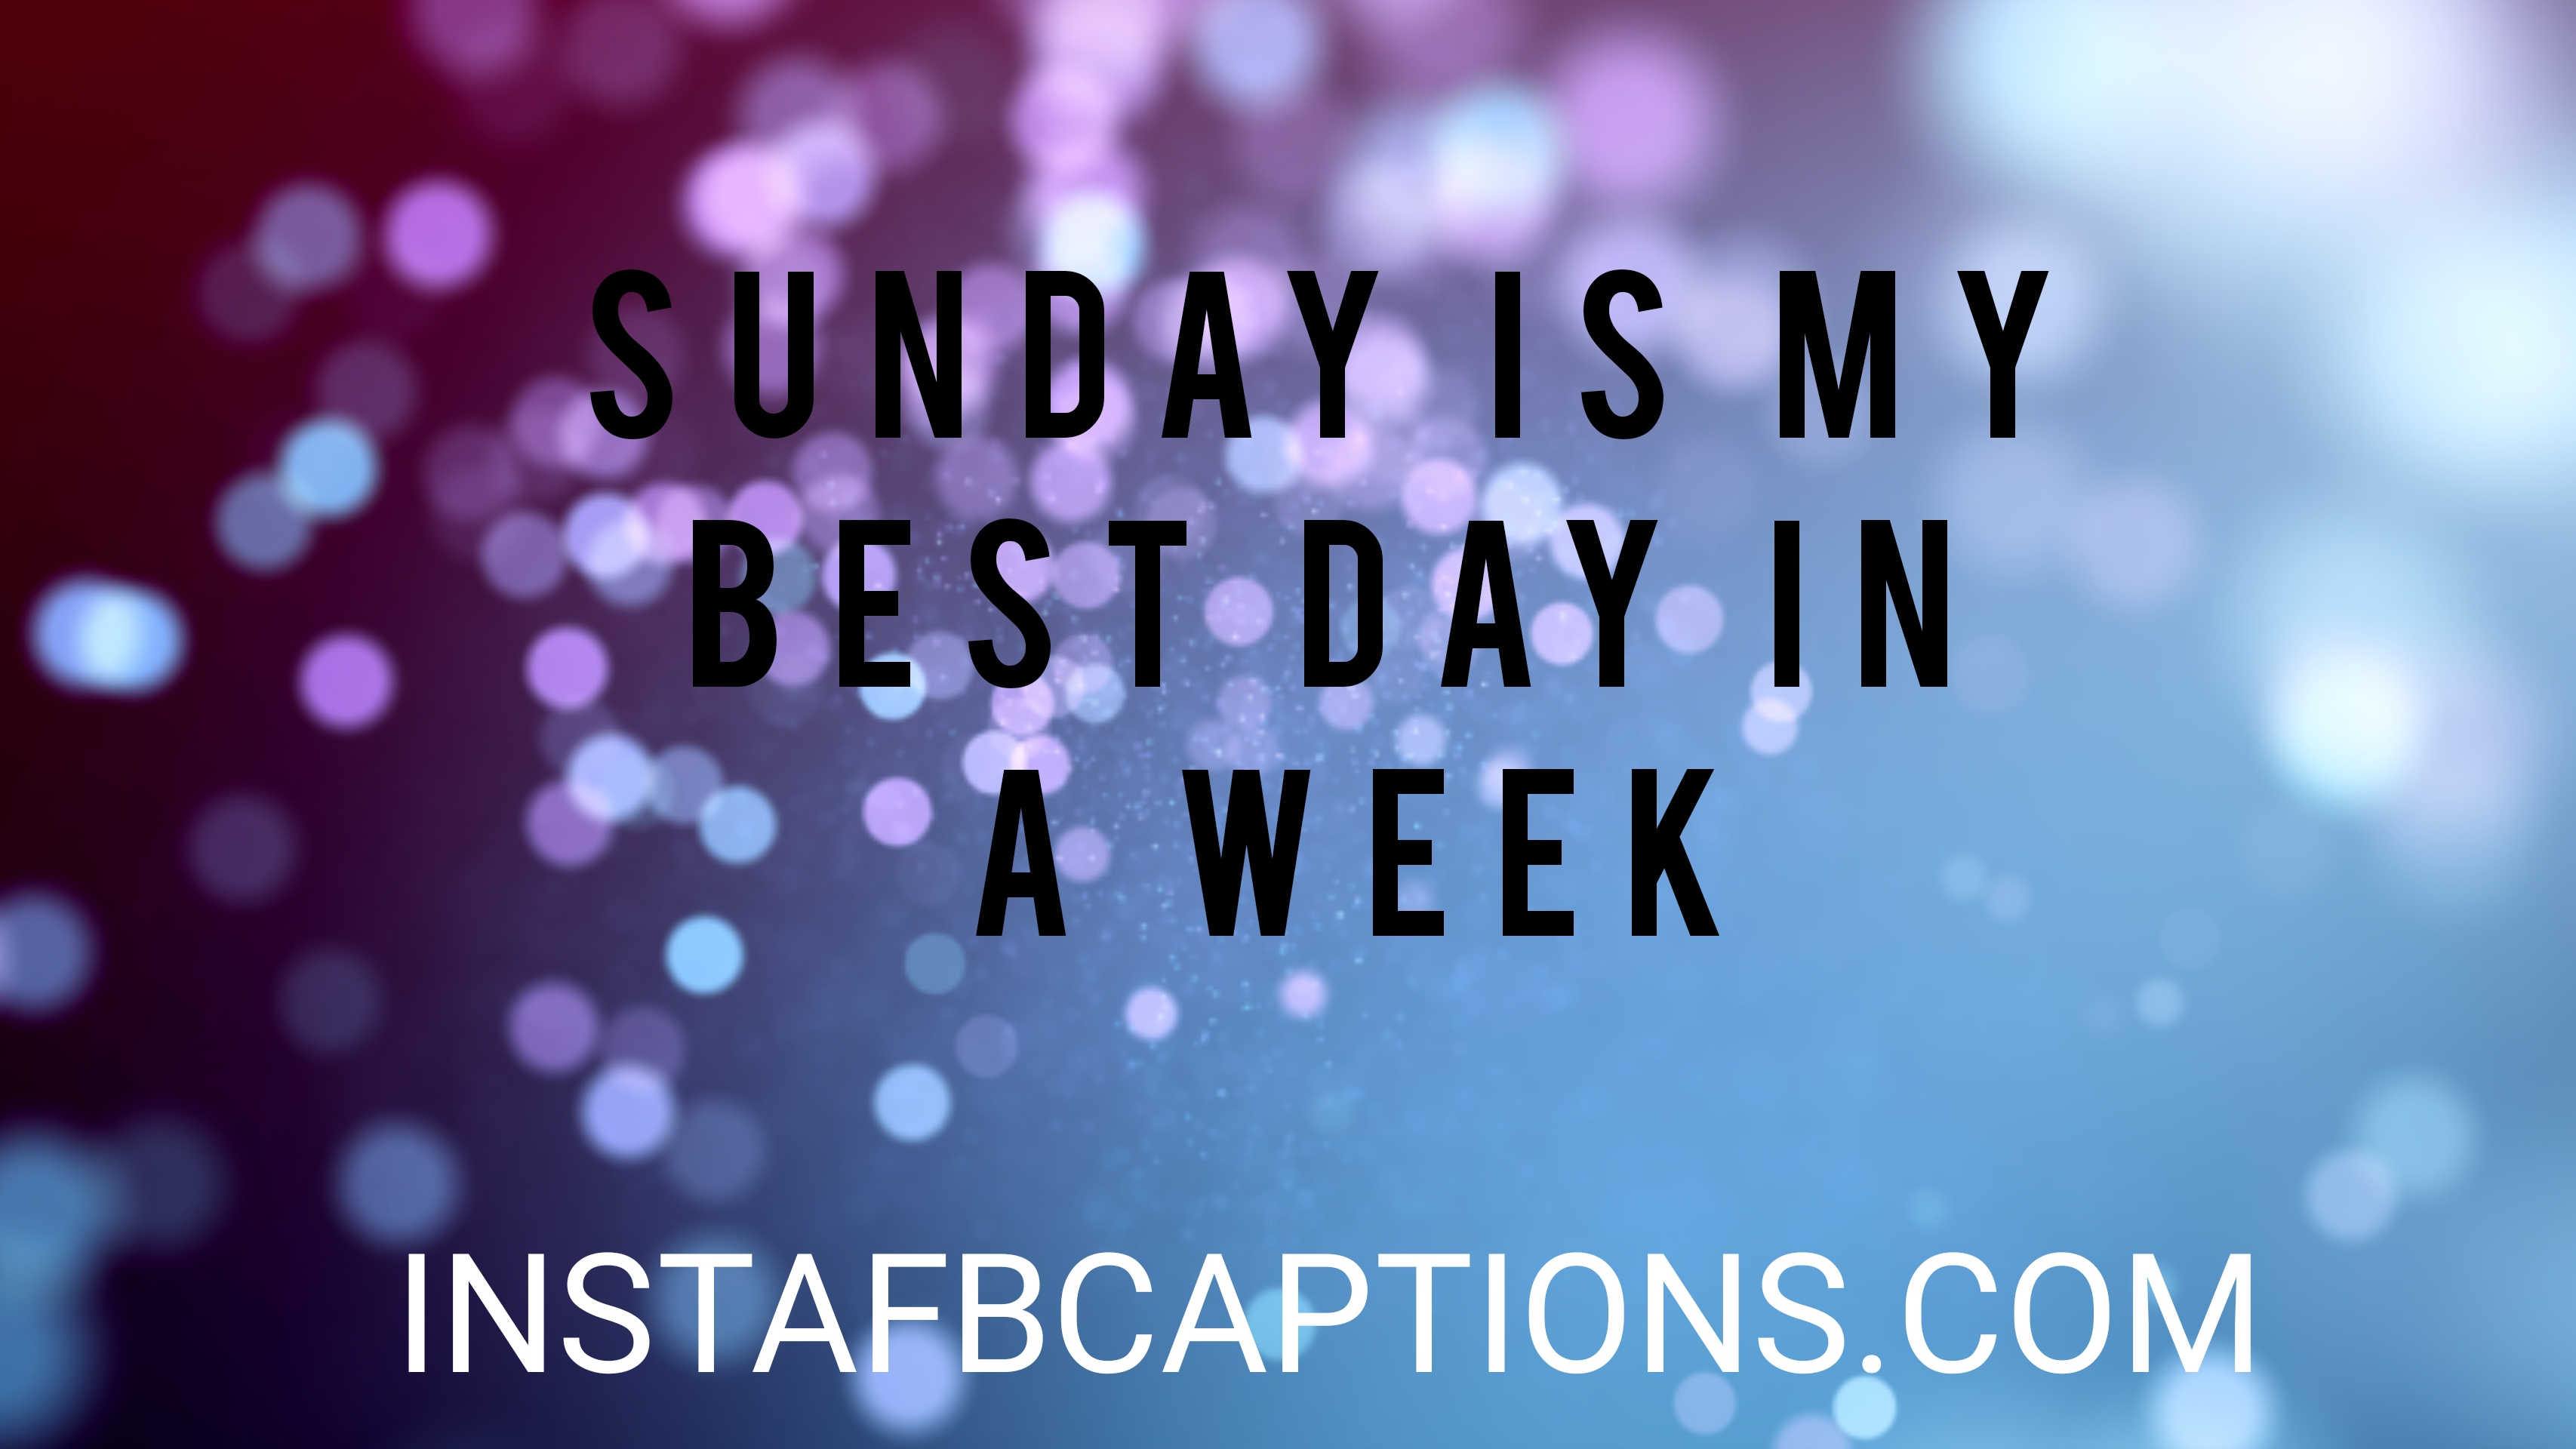 Sunday Is My Best Day In A Week  - sunday is my best day in a week - 500+ WEEKEND Instagram Captions 2021